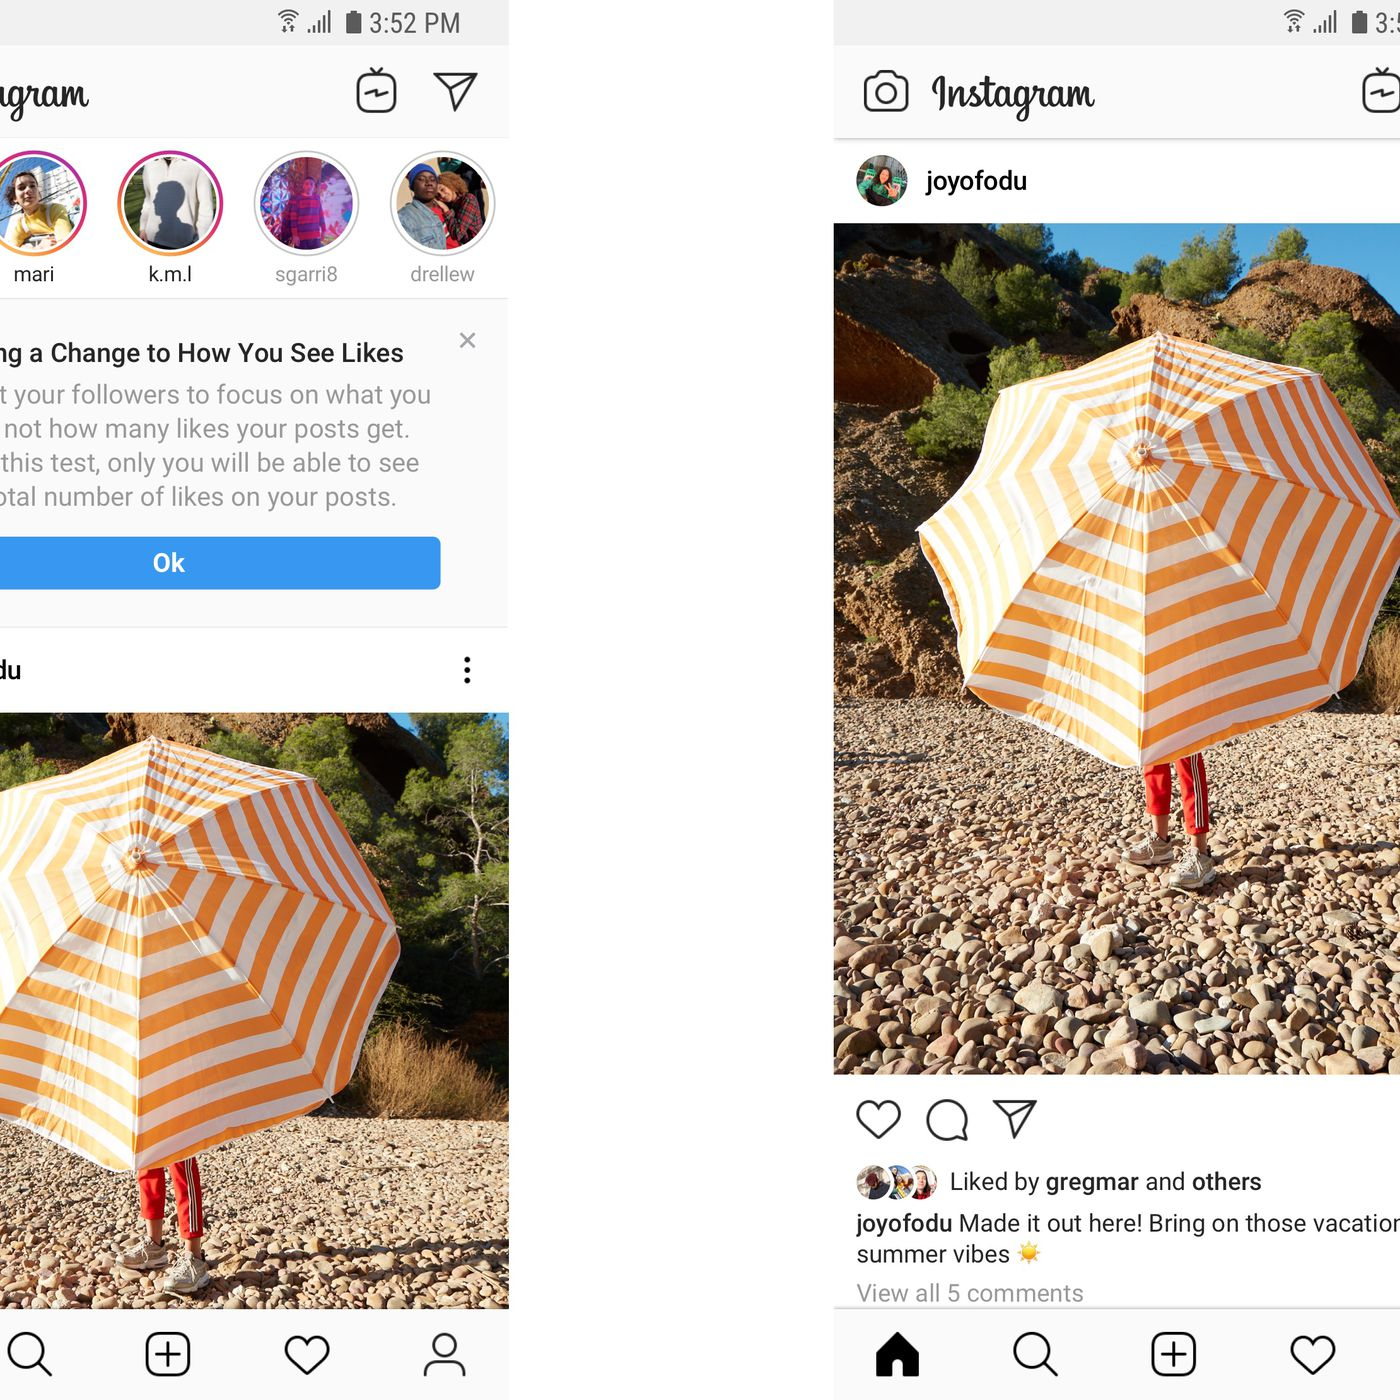 Instagram will test hiding public like counts in Canada - The Verge